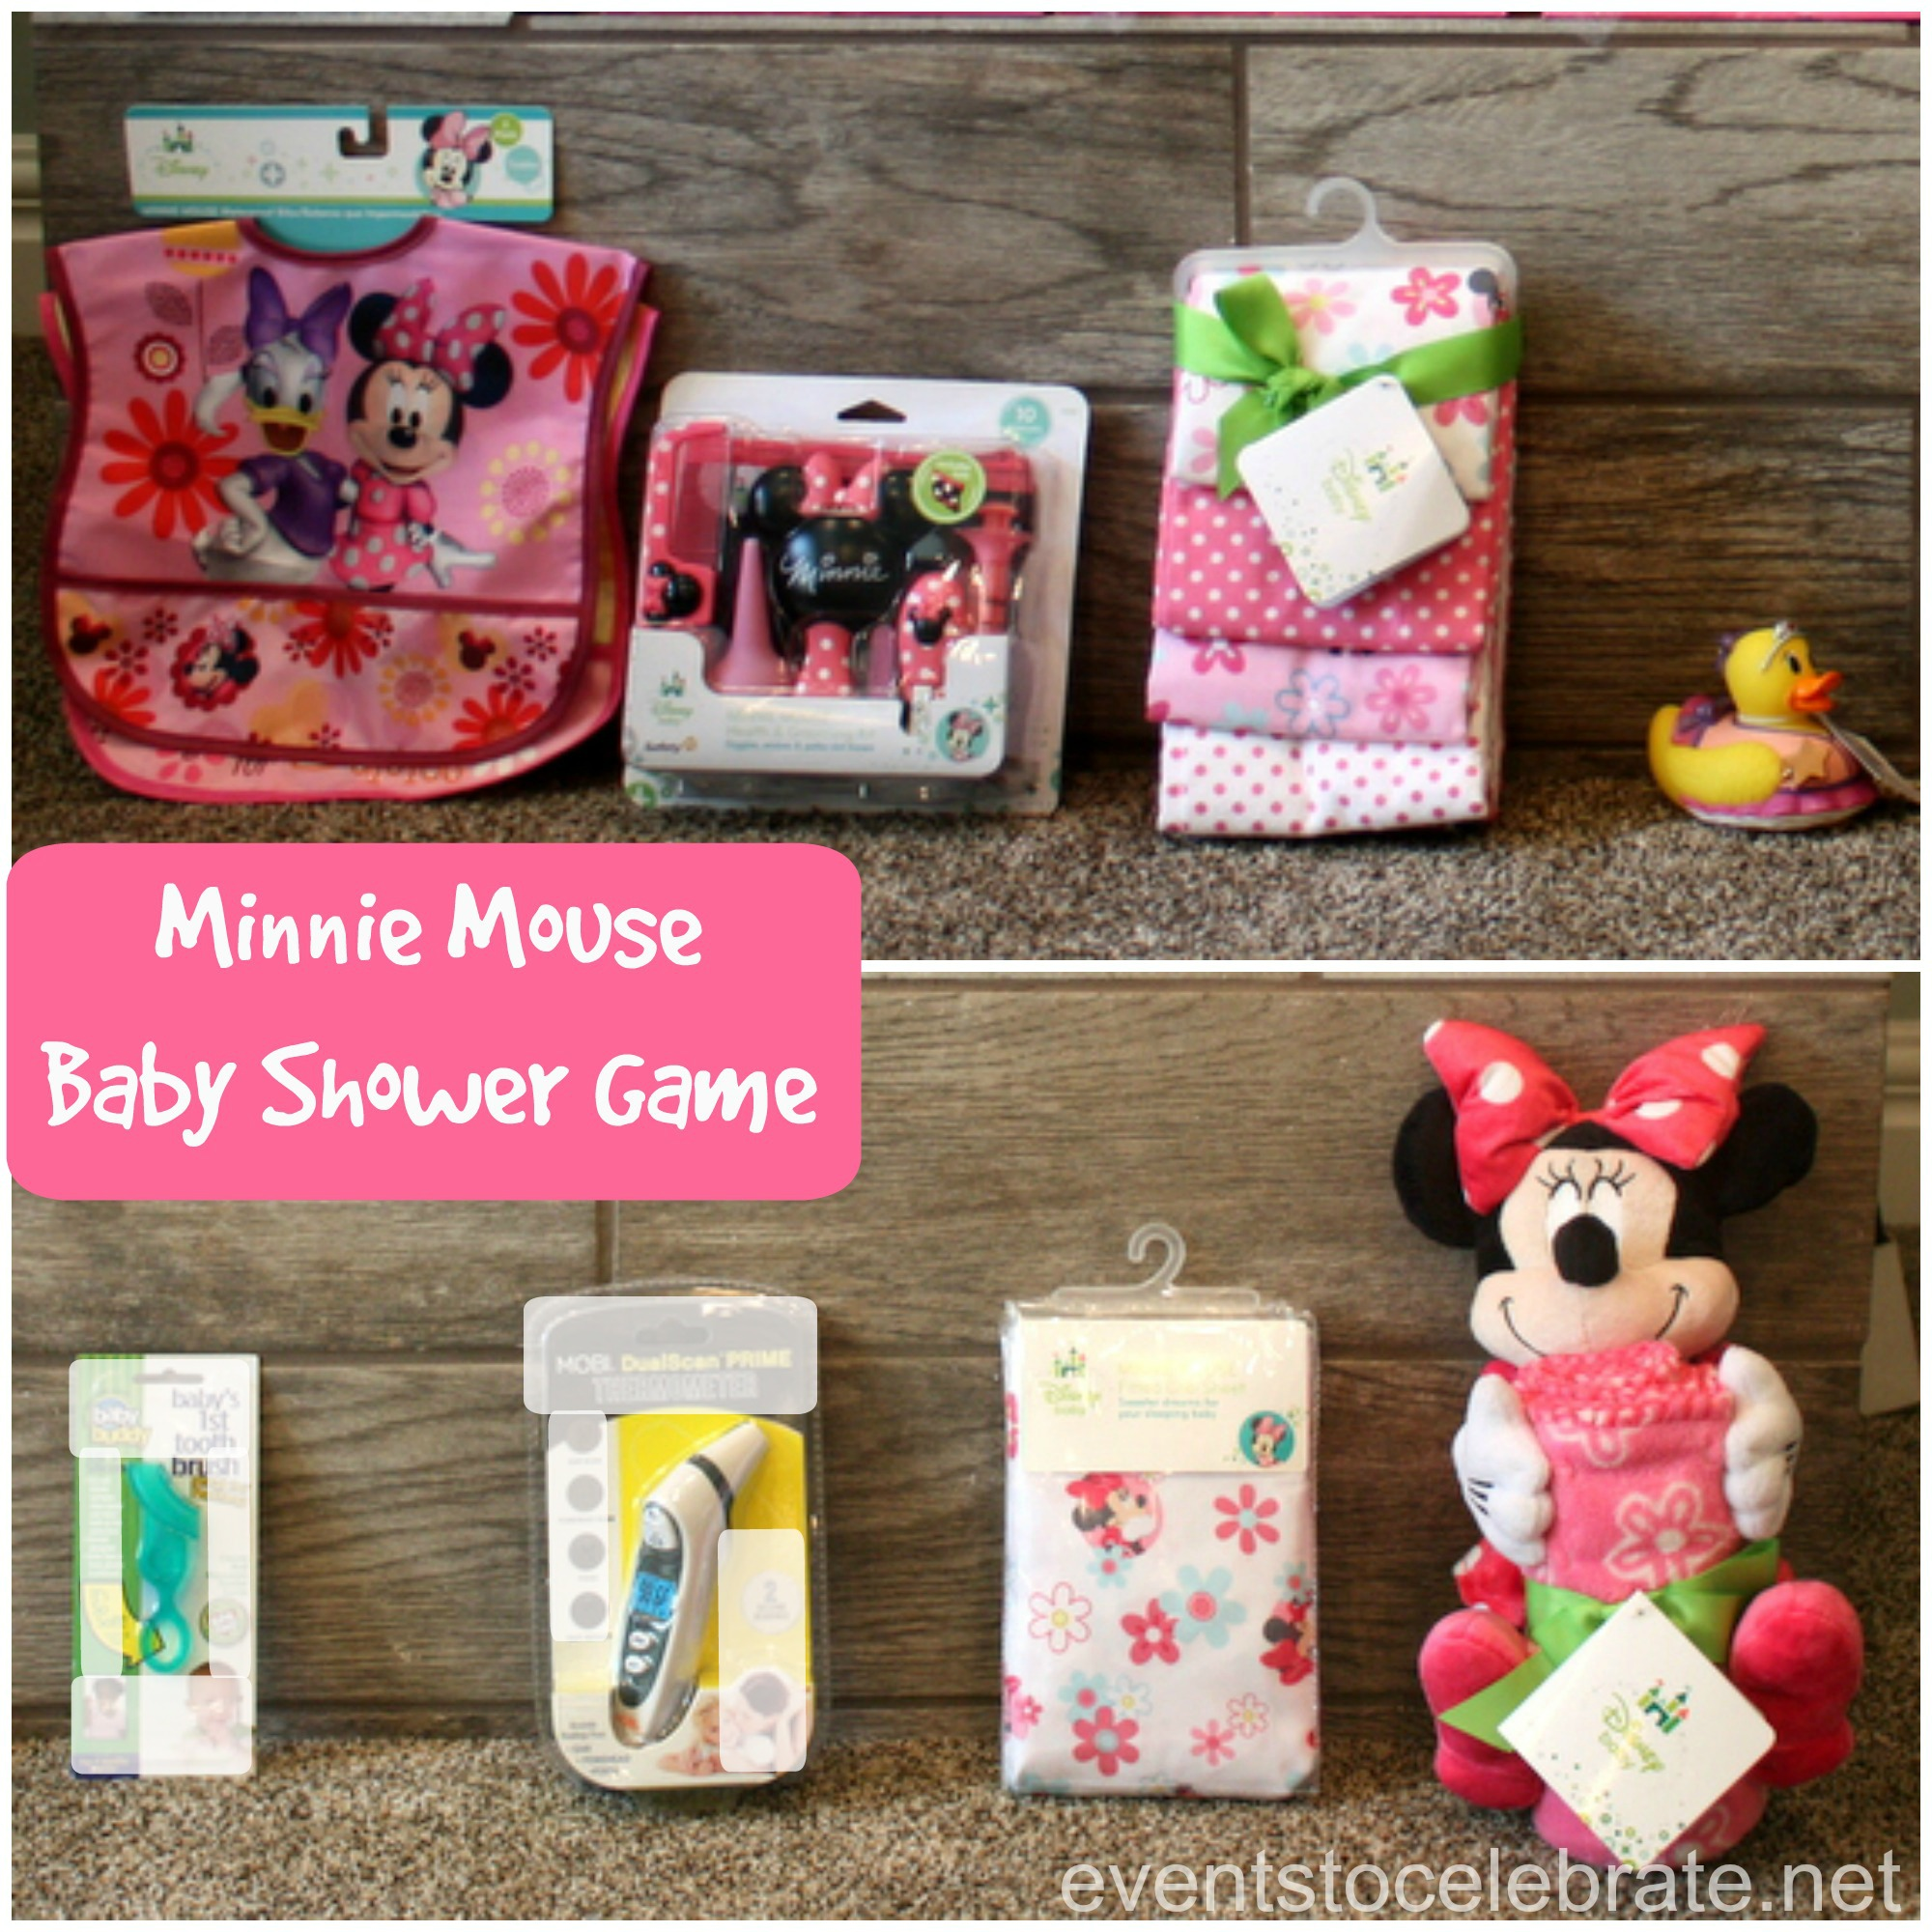 Minnie Mouse Baby Shower Game   Events To Celebrate.